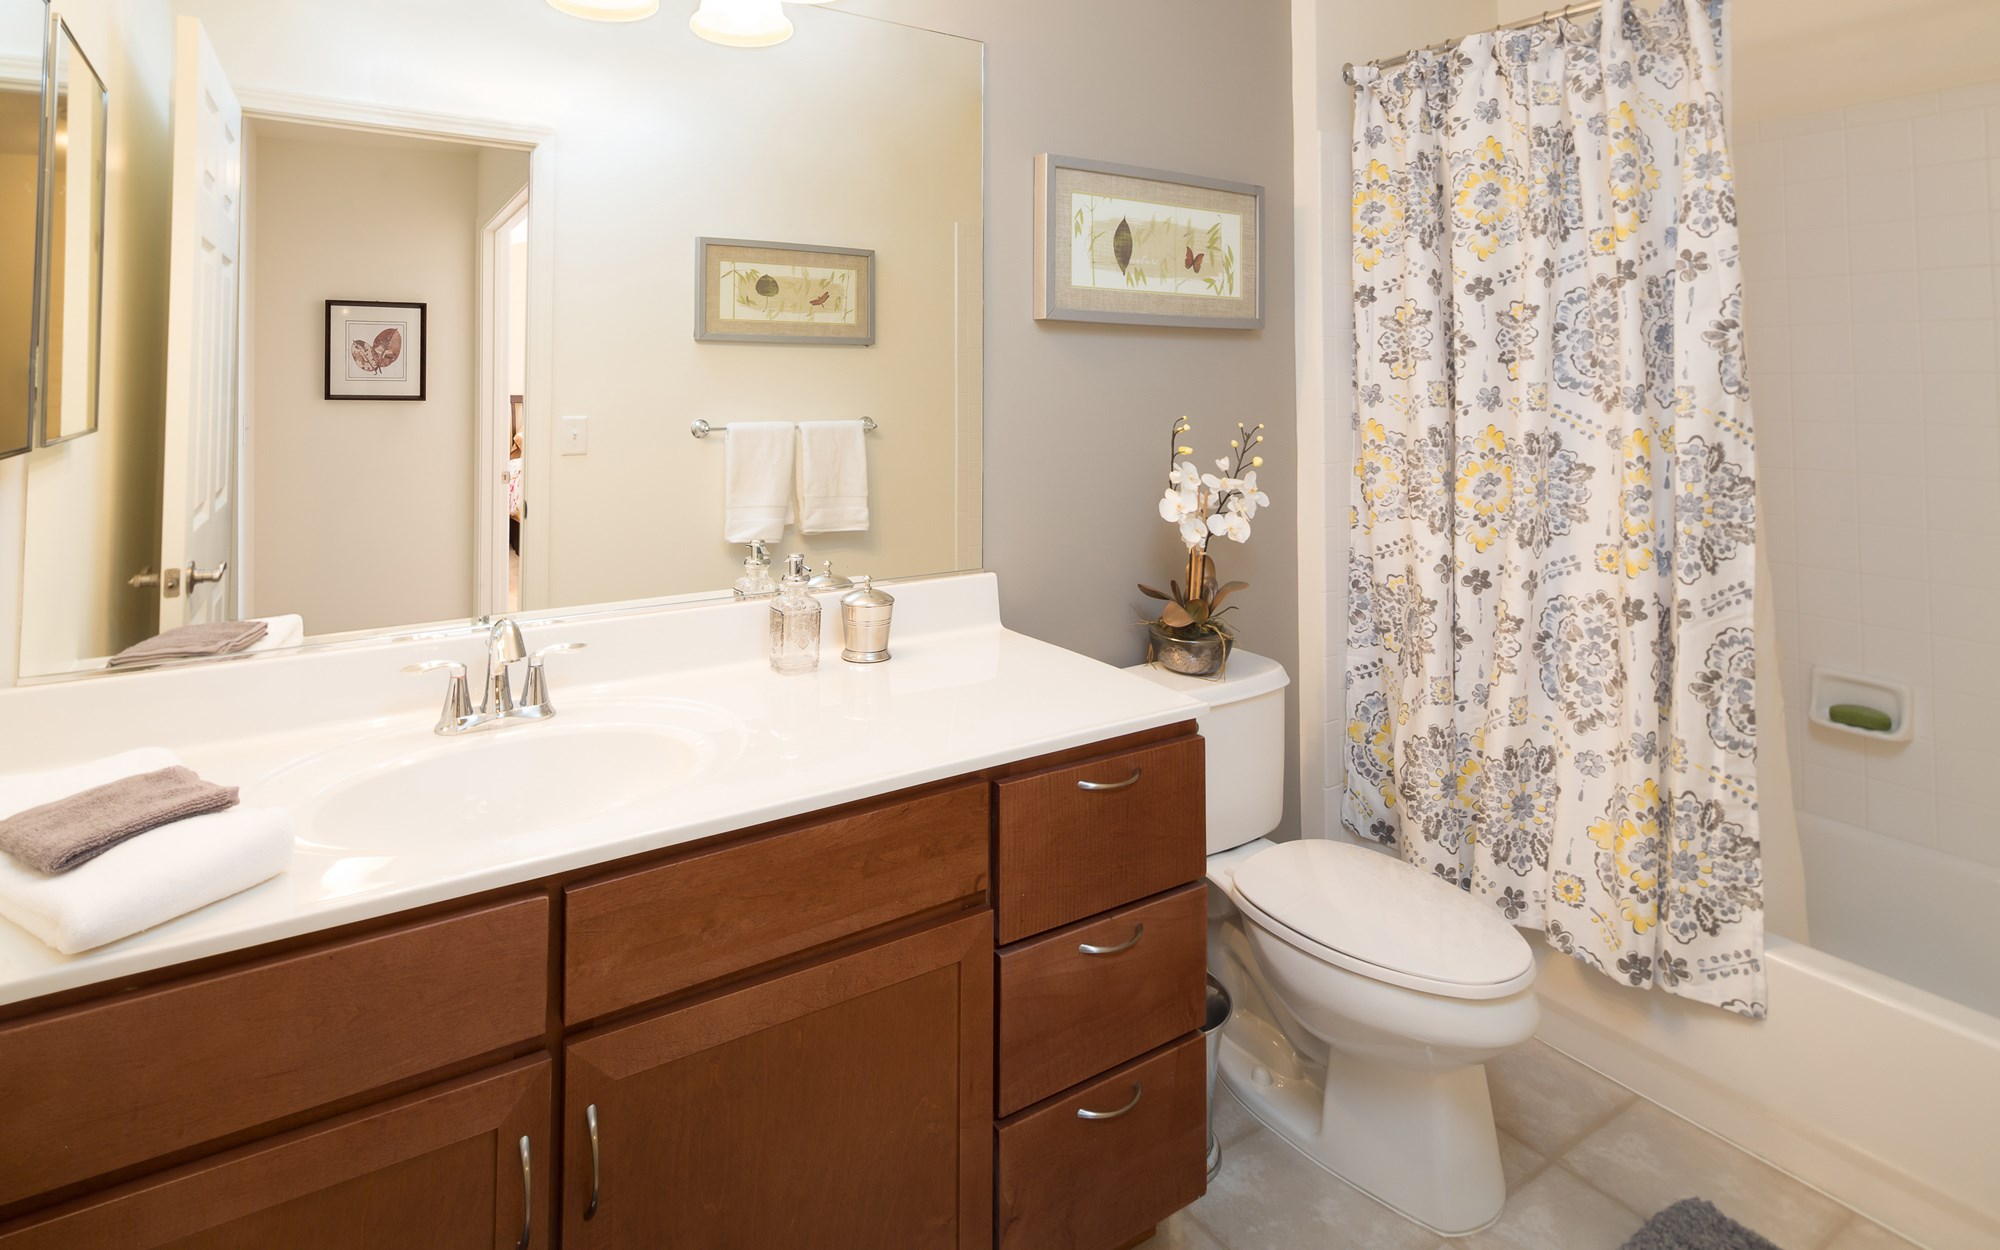 Bathroom at Huntington Townhomes in Shelton, CT